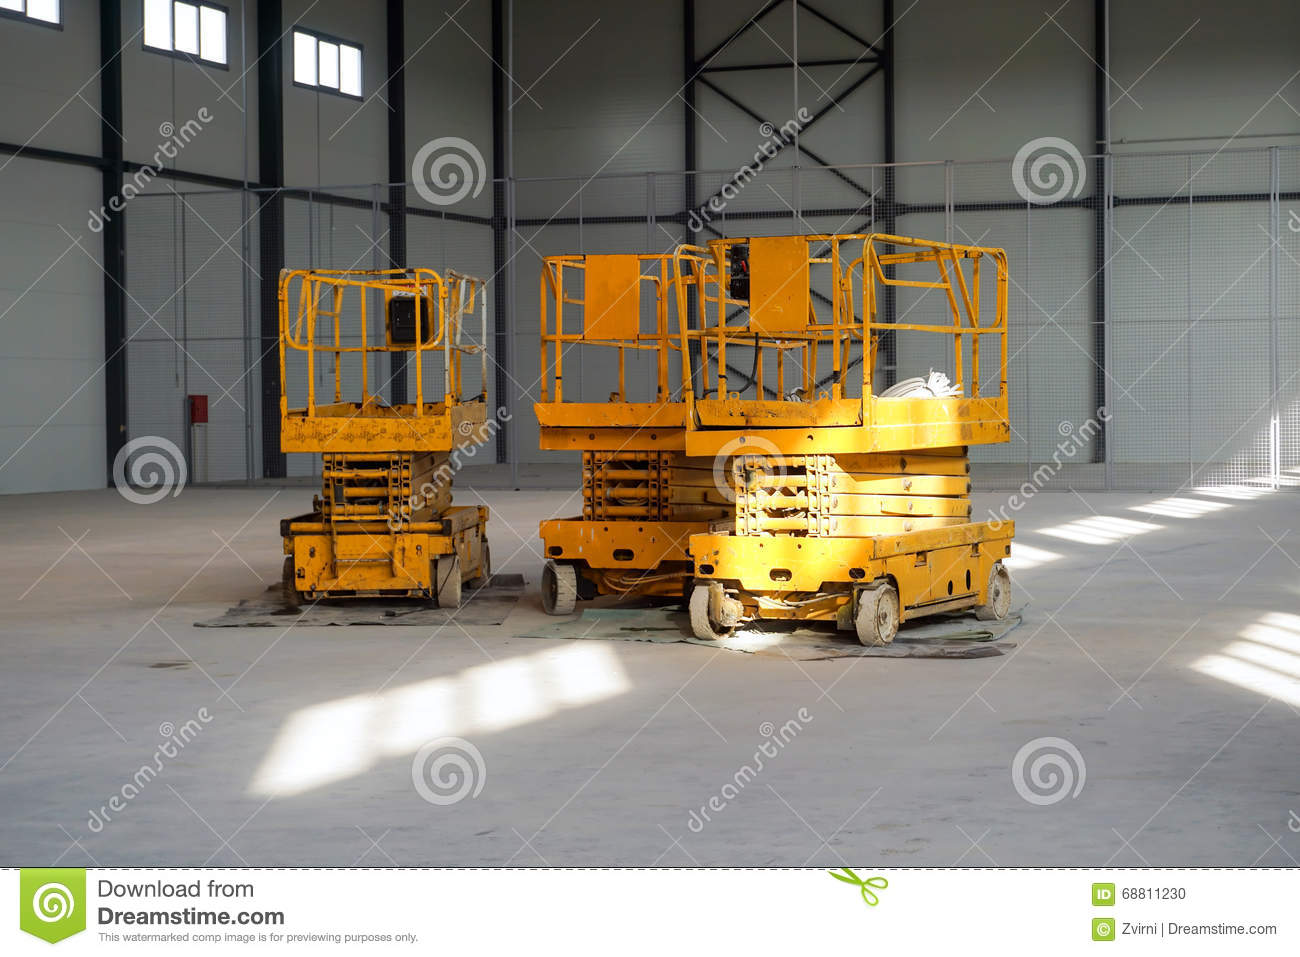 Scissors lift platforms